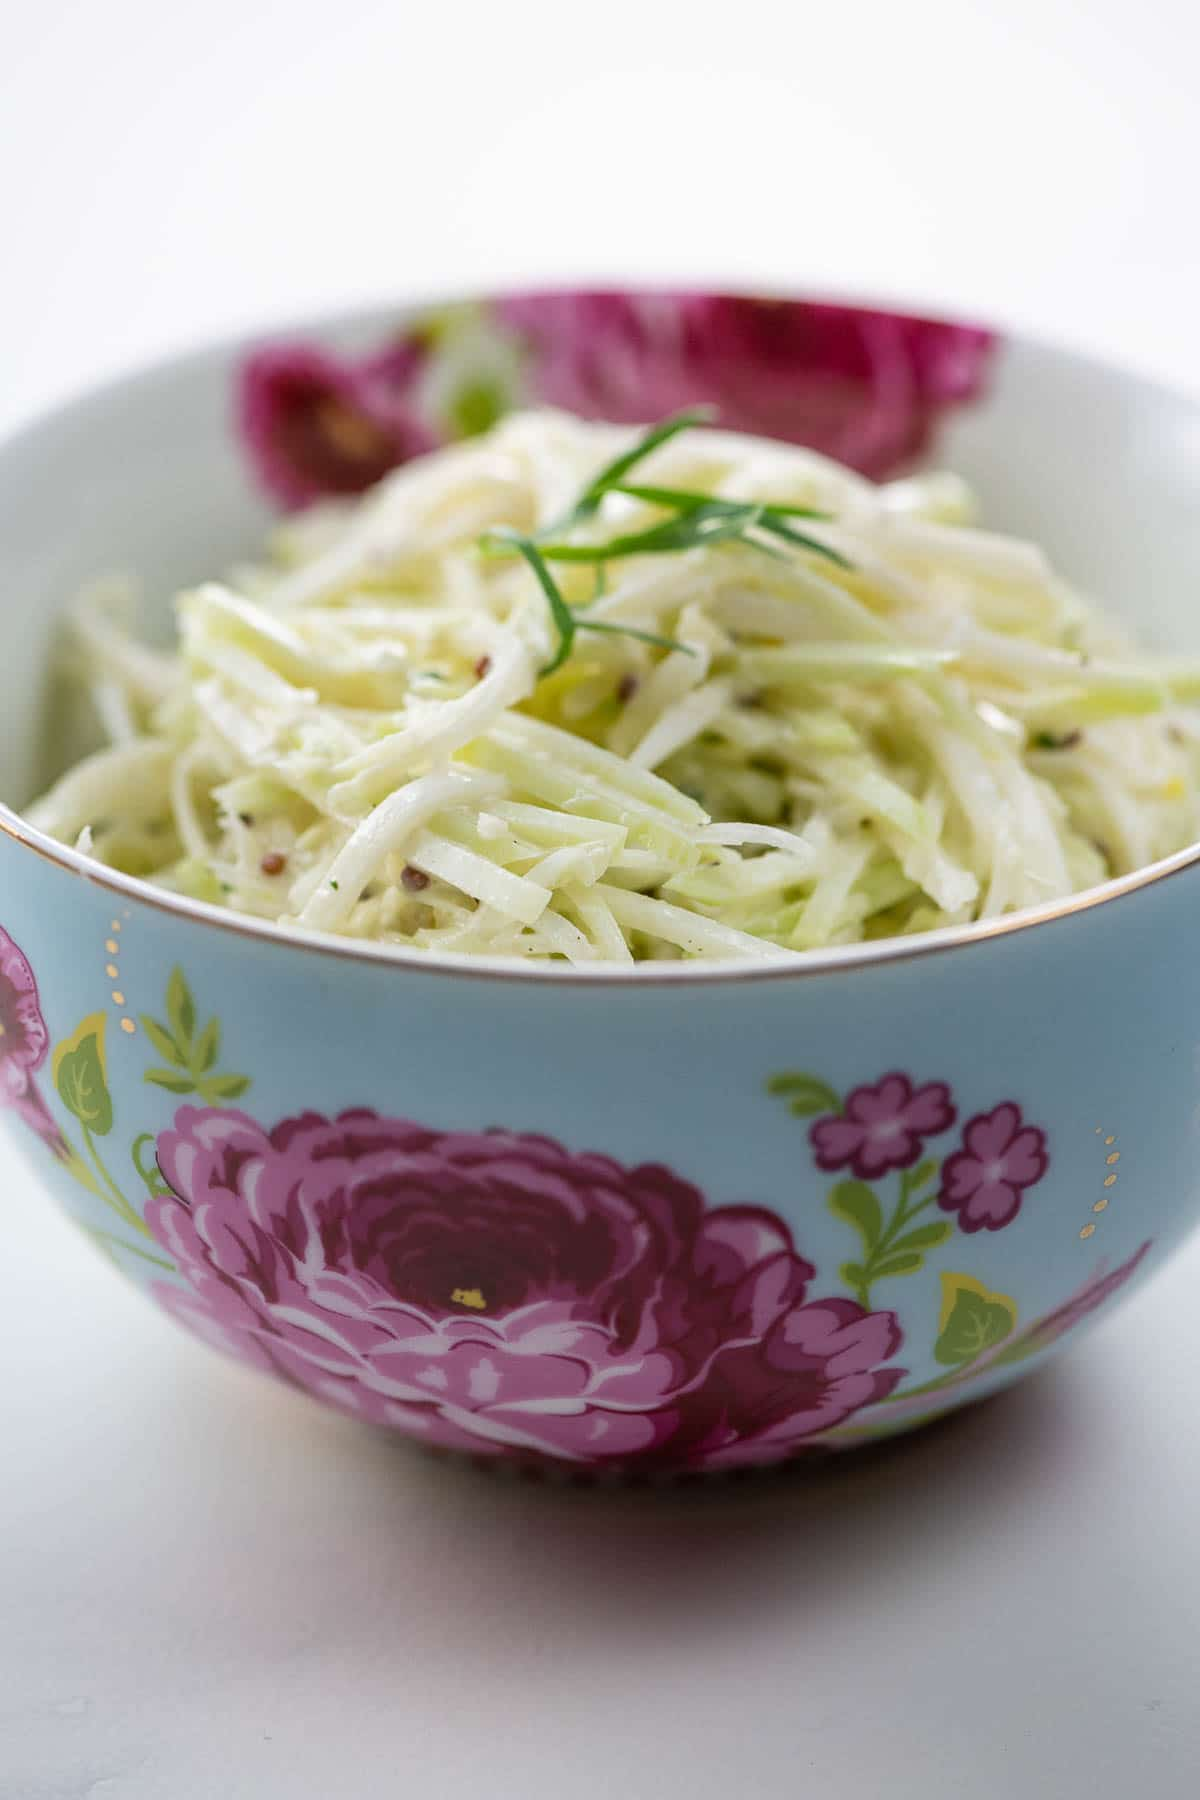 kohlrabi remoulade in a beautiful blue and pink bowl